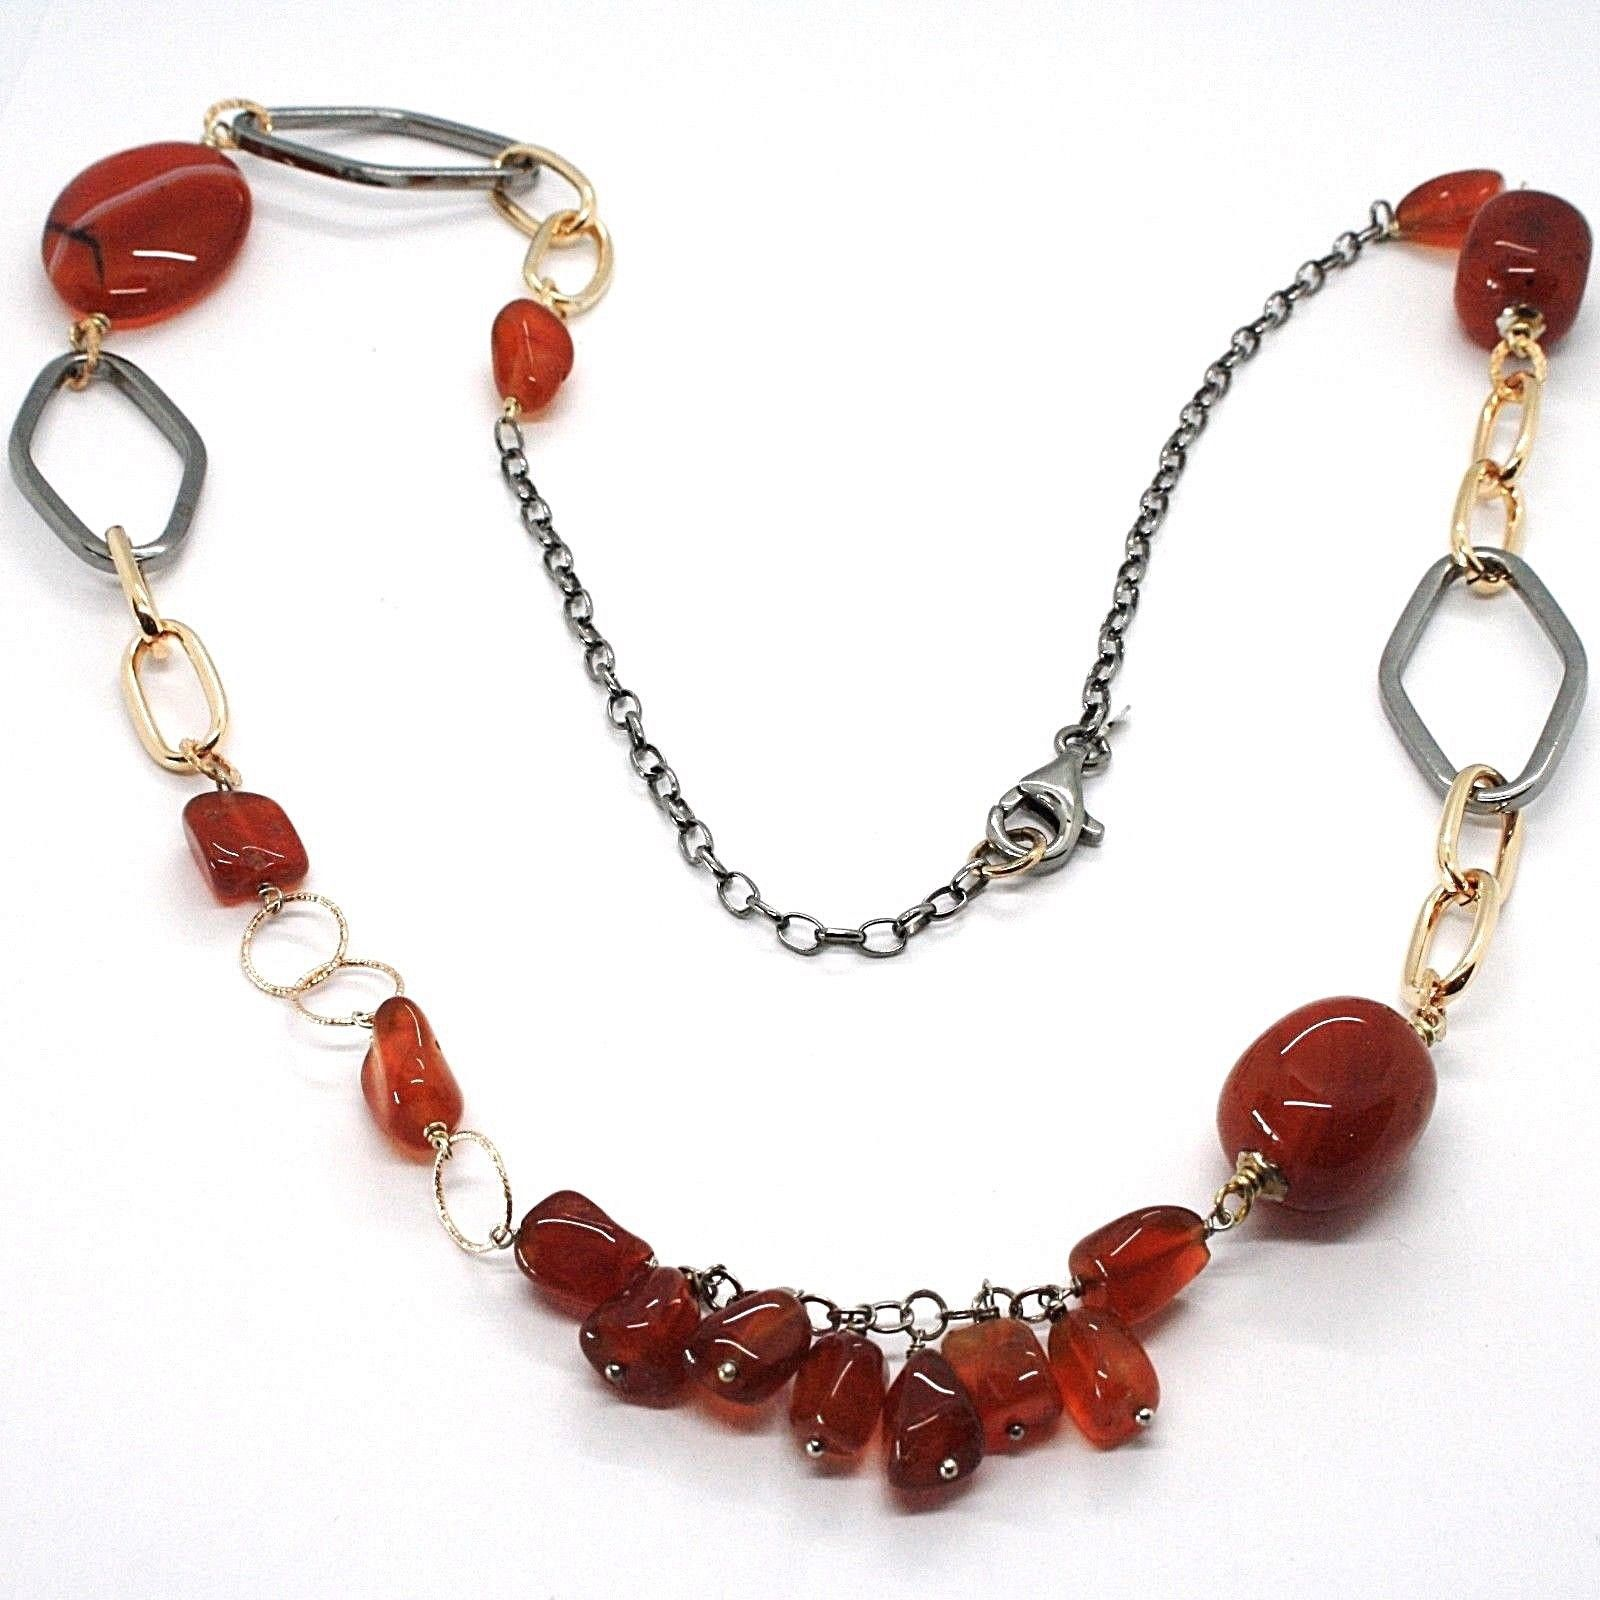 SILVER 925 NECKLACE, BURNISHED AND PINK, CARNELIAN RED, LENGTH 70 CM